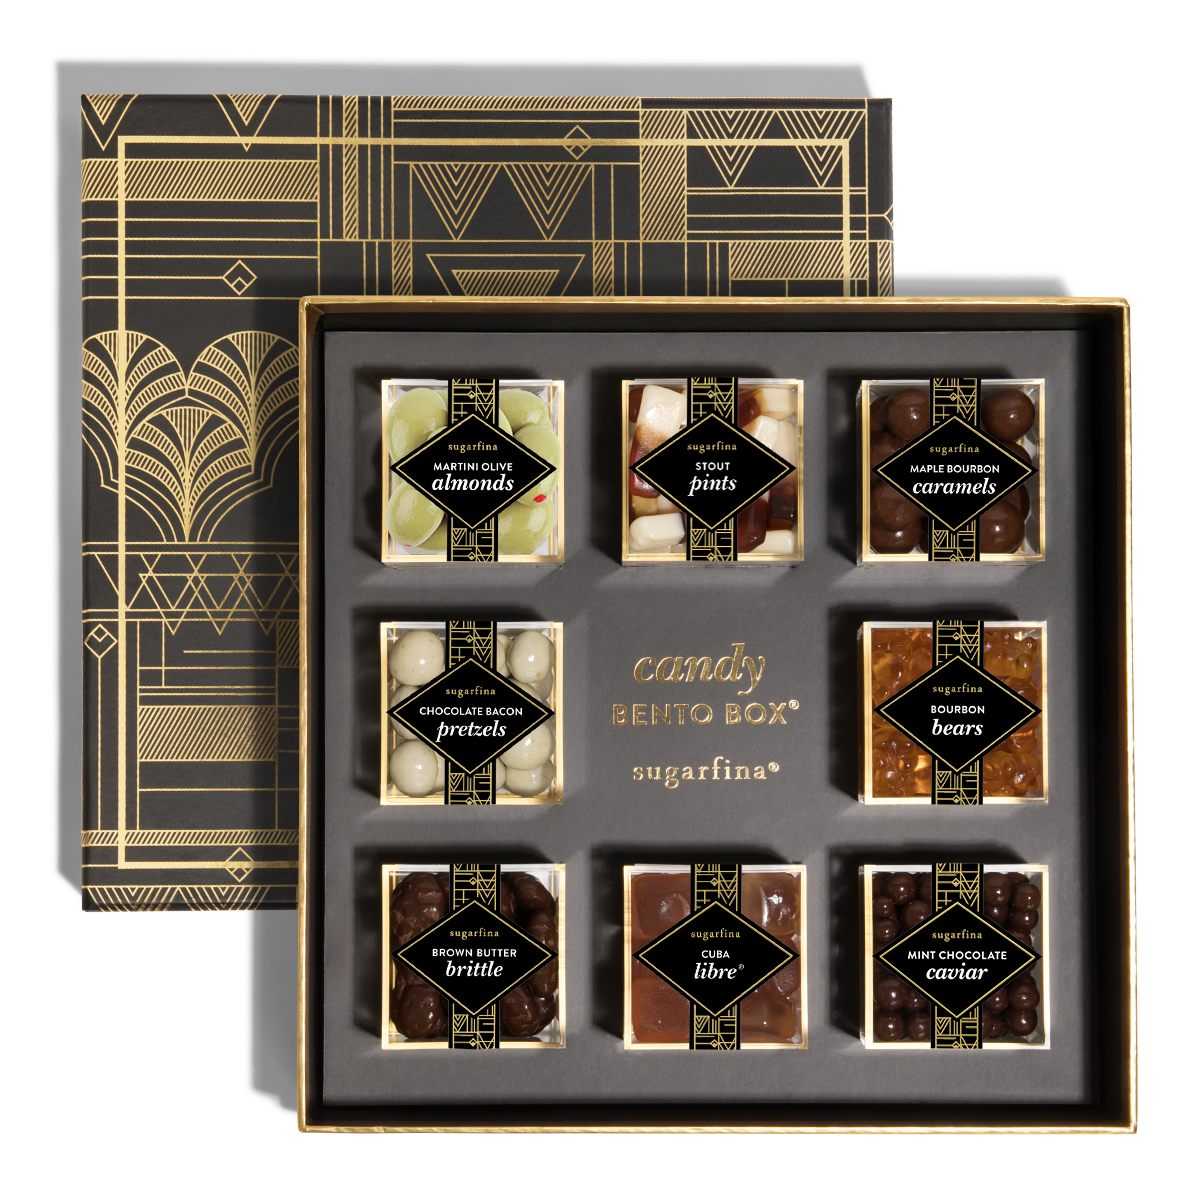 06f2f60be488 The Vice Collection 8pc Candy Bento Box® is wrapped in a sleek black and  gold foil gift box and holds eight lucite cubes (approx 3.25oz each) filled  with ...